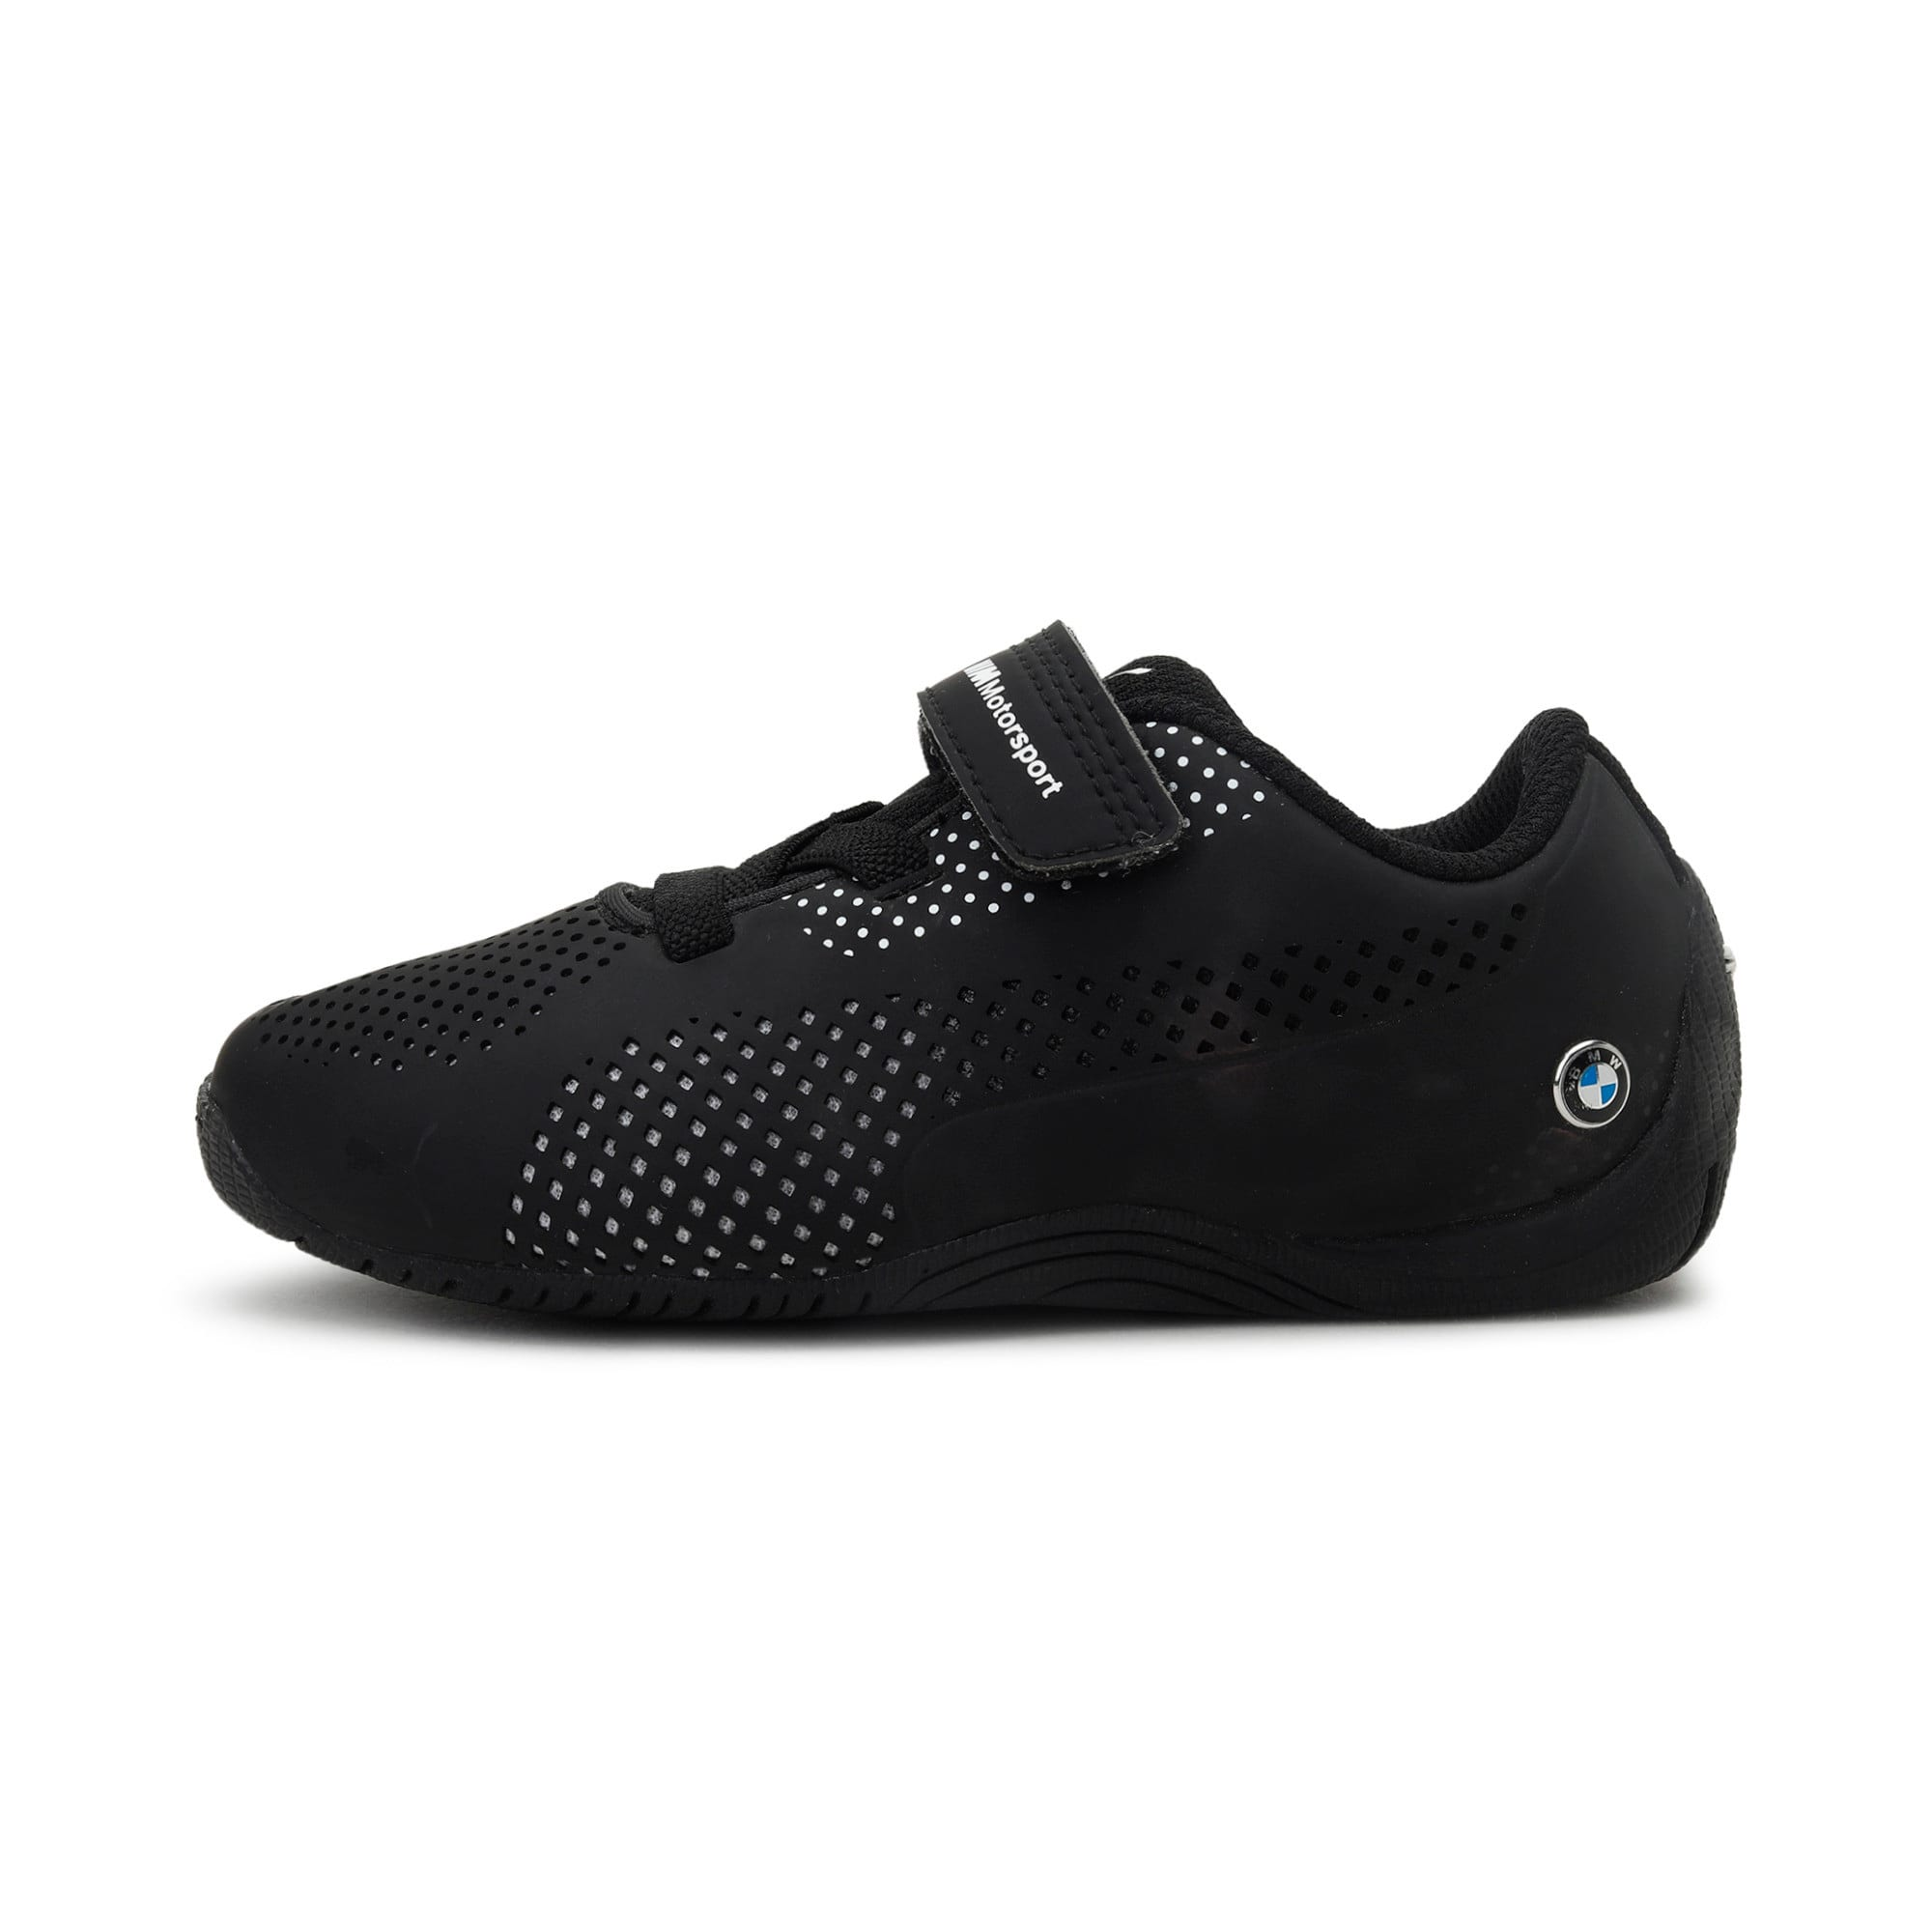 Thumbnail 1 of BMW Motorsport Drift Cat 5 Ultra PS Kids' Trainers, Anthracite-Puma White, medium-IND